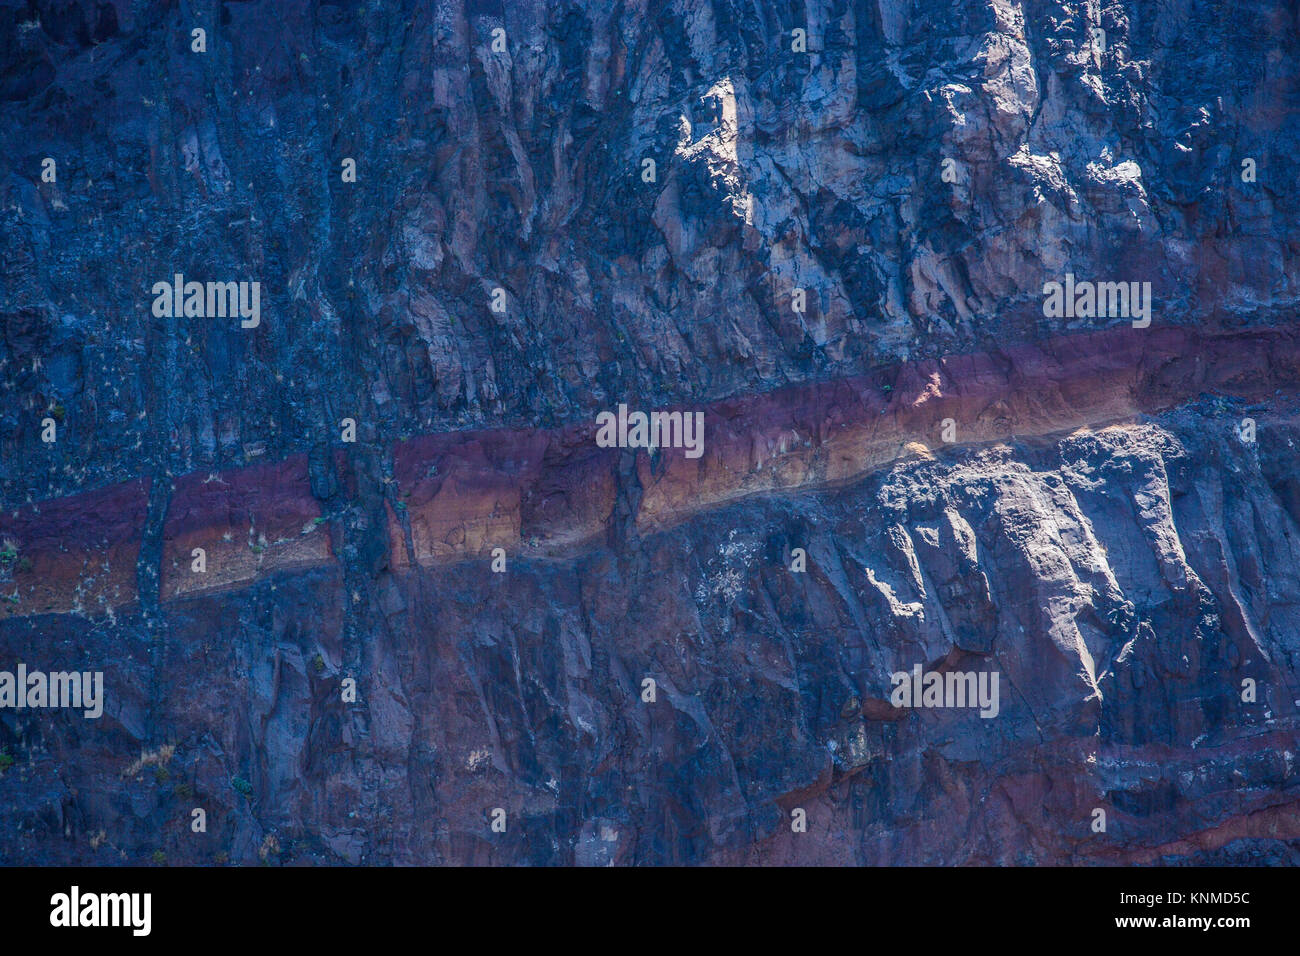 Surface of Cliff on Madeira - Pattern structure of geologic stones - Stock Image